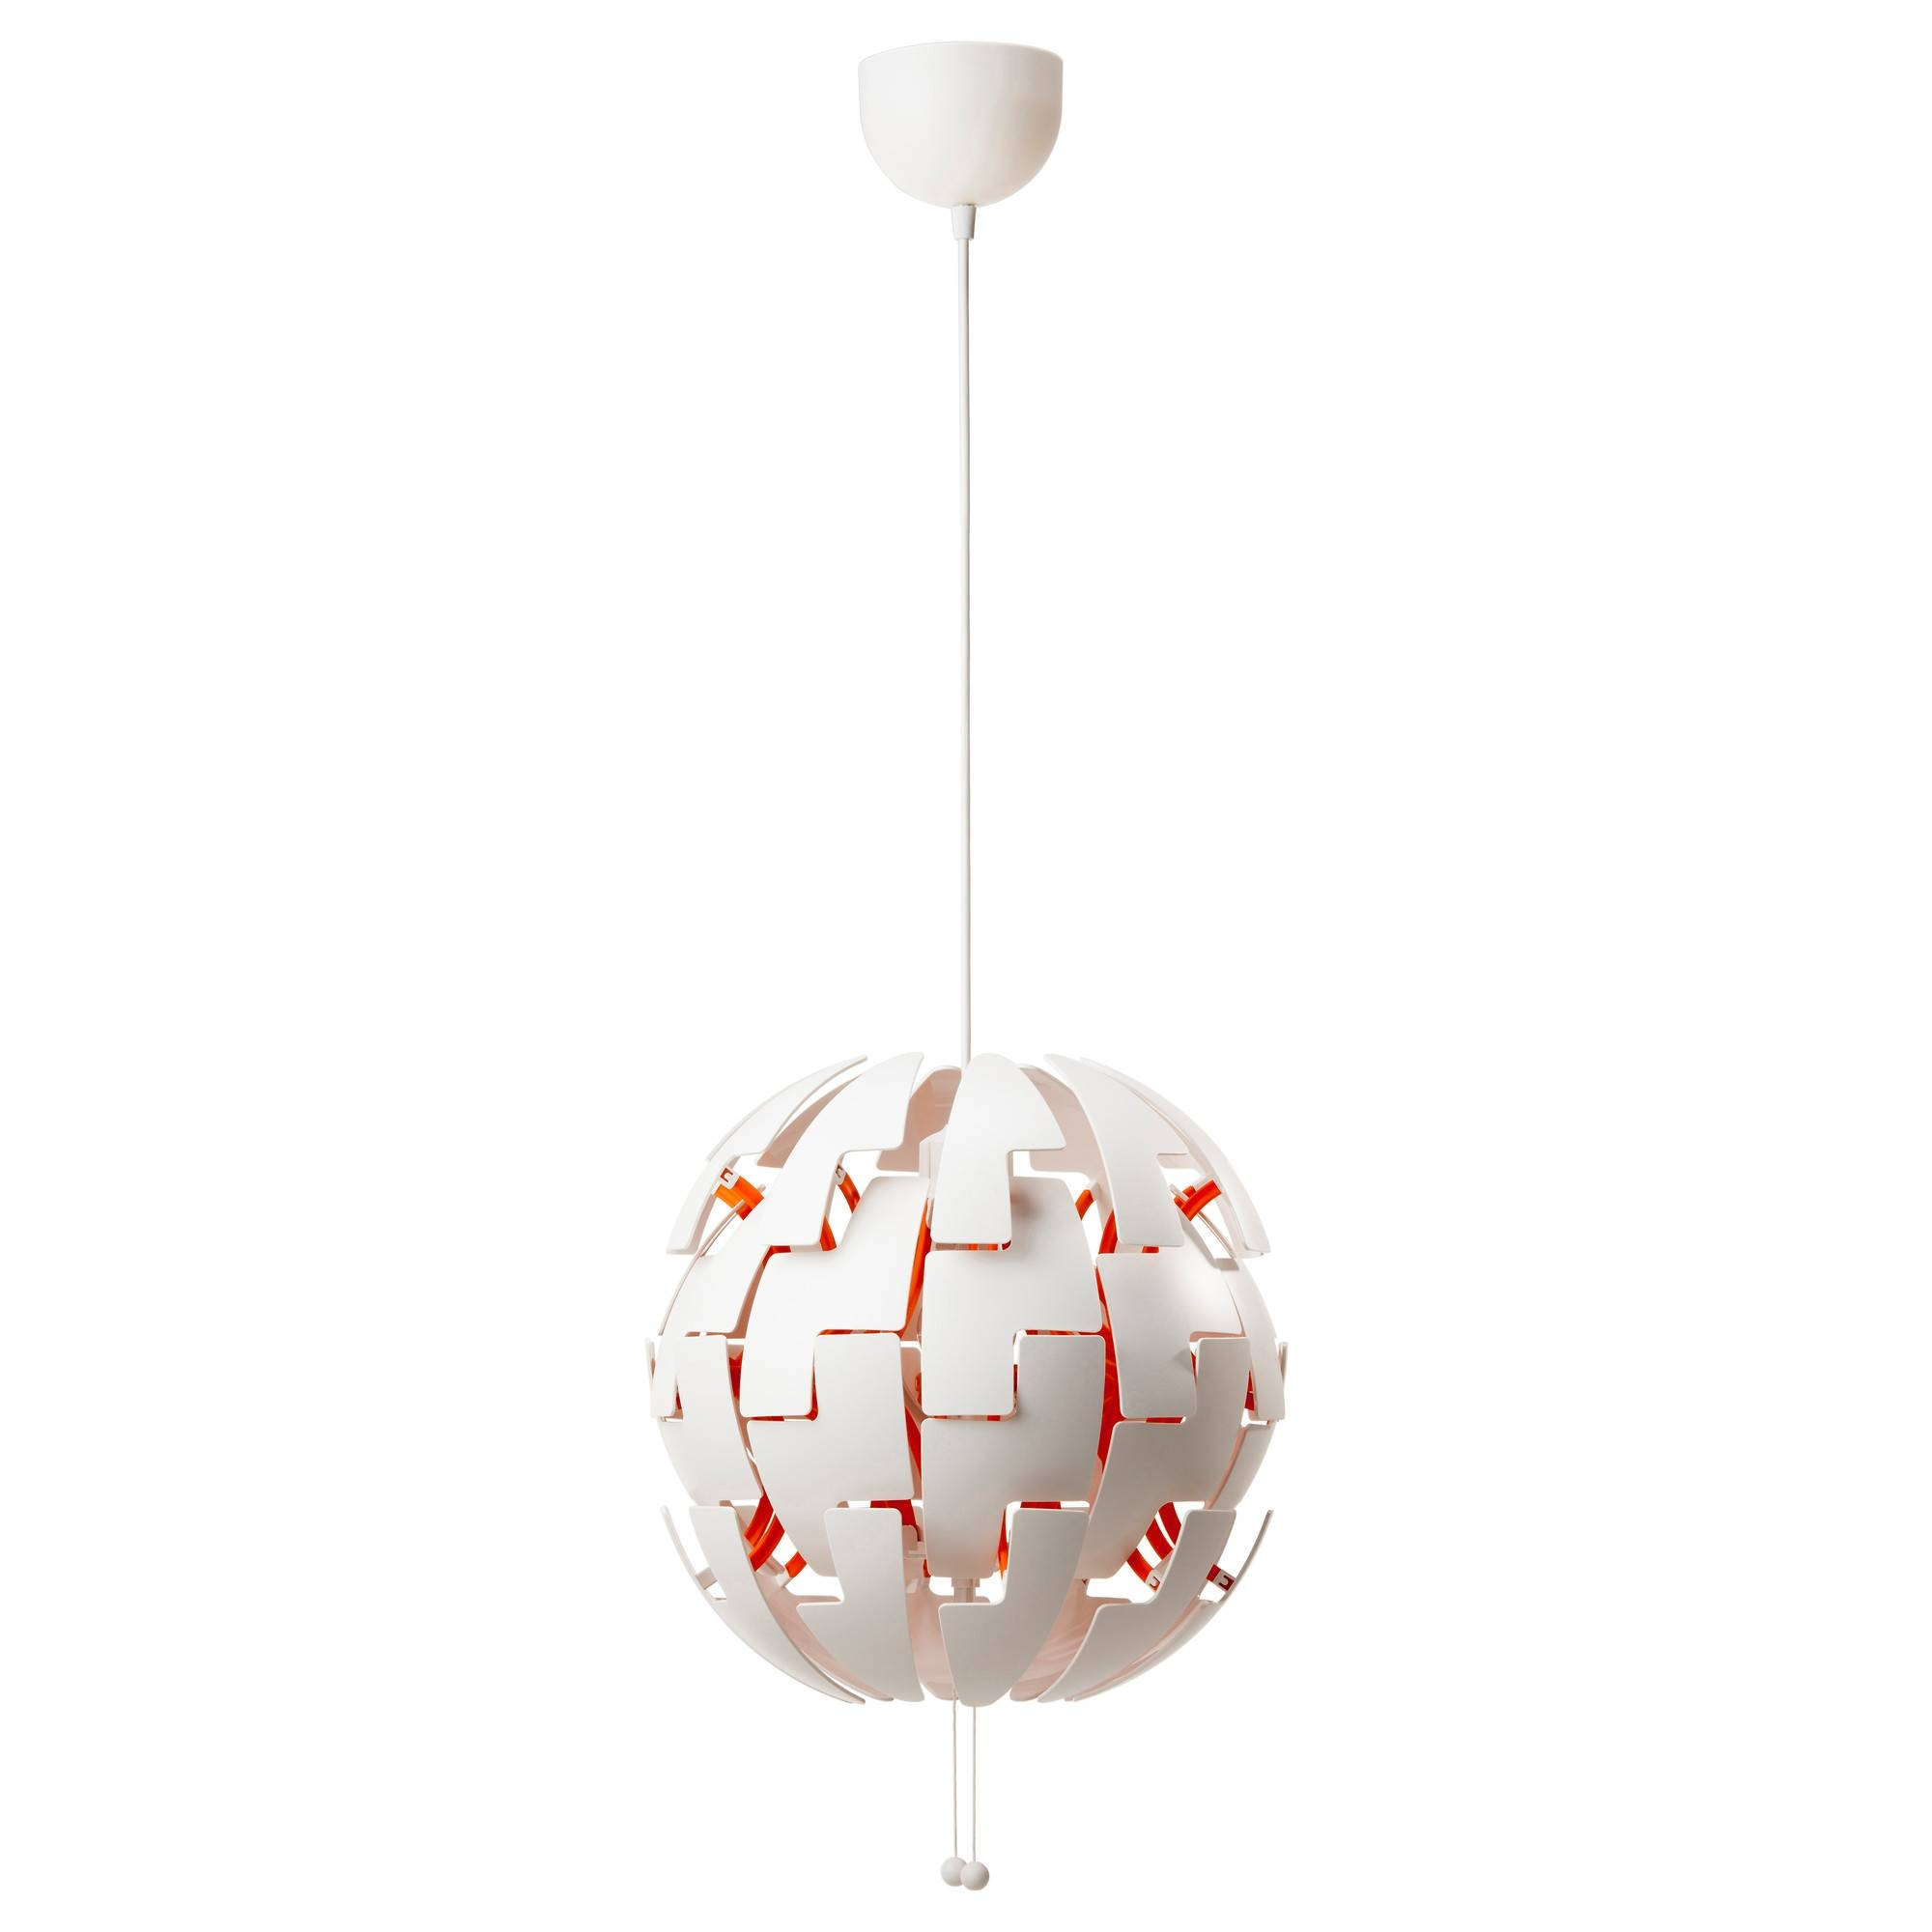 Ikea Ps 2014 Pendant Lamp White/orange – Ikea With Ikea Globe Lights (View 8 of 15)